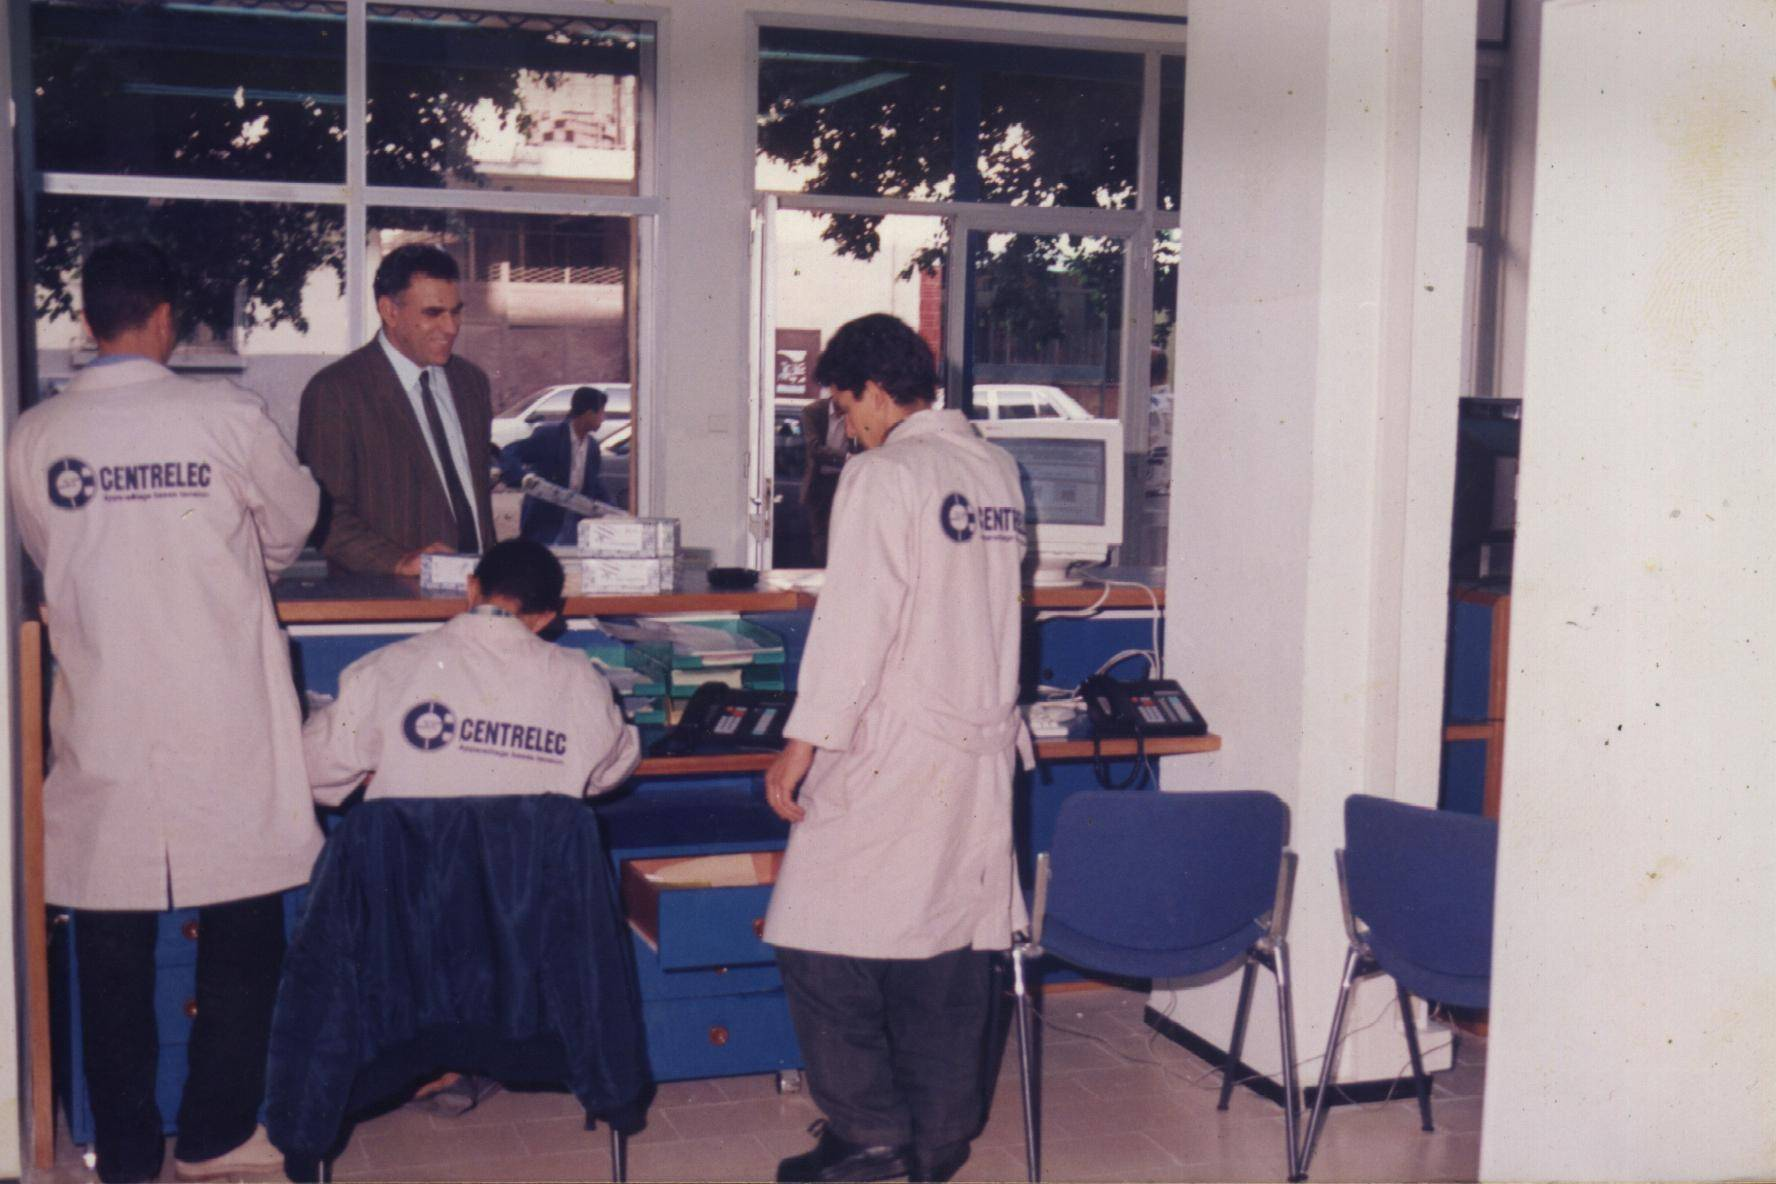 1996 : Point de vente CENTRELEC